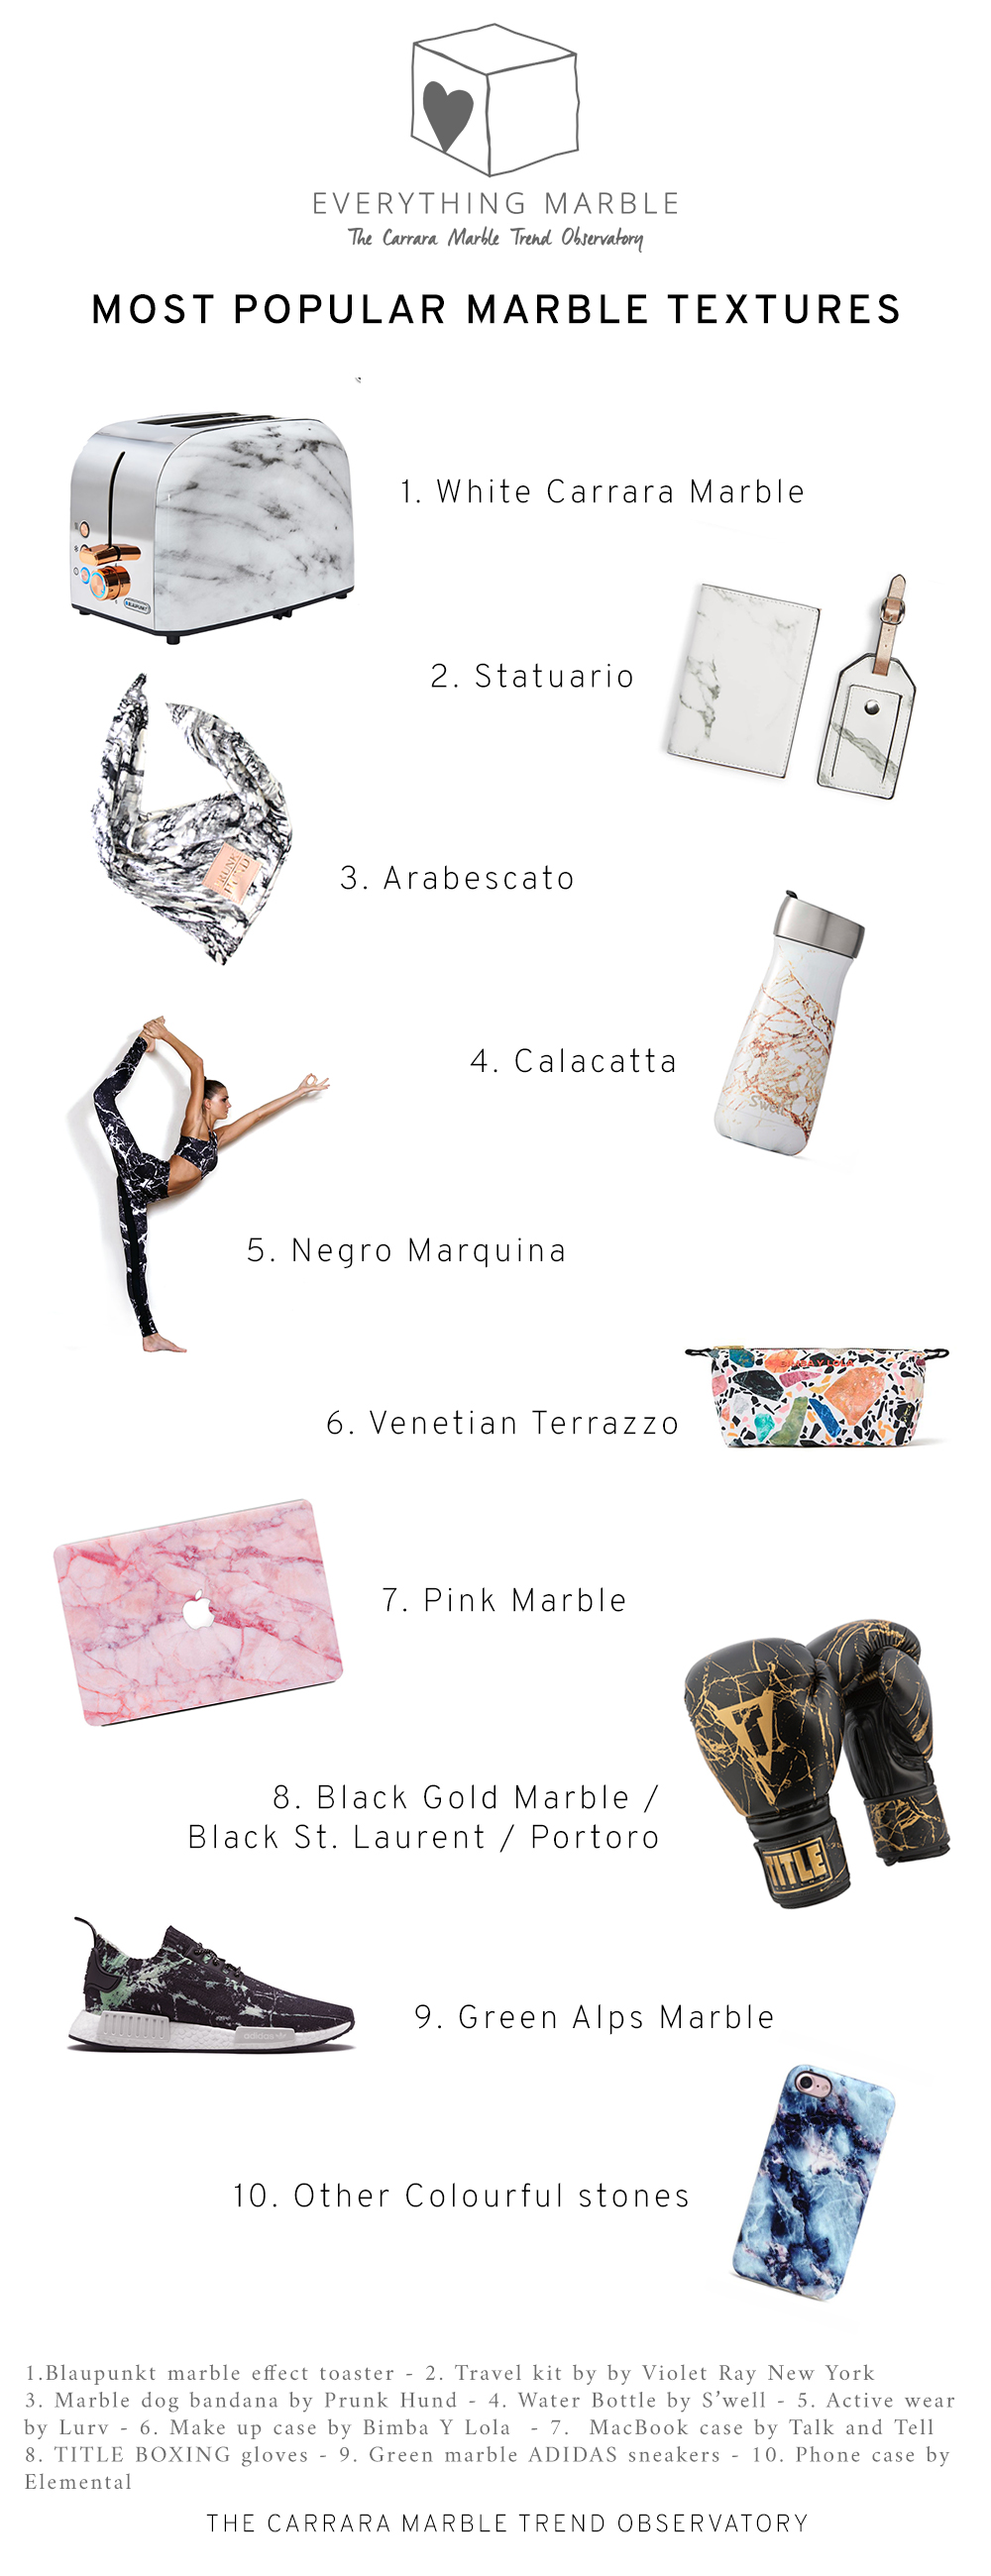 Most popular marble textures for product design